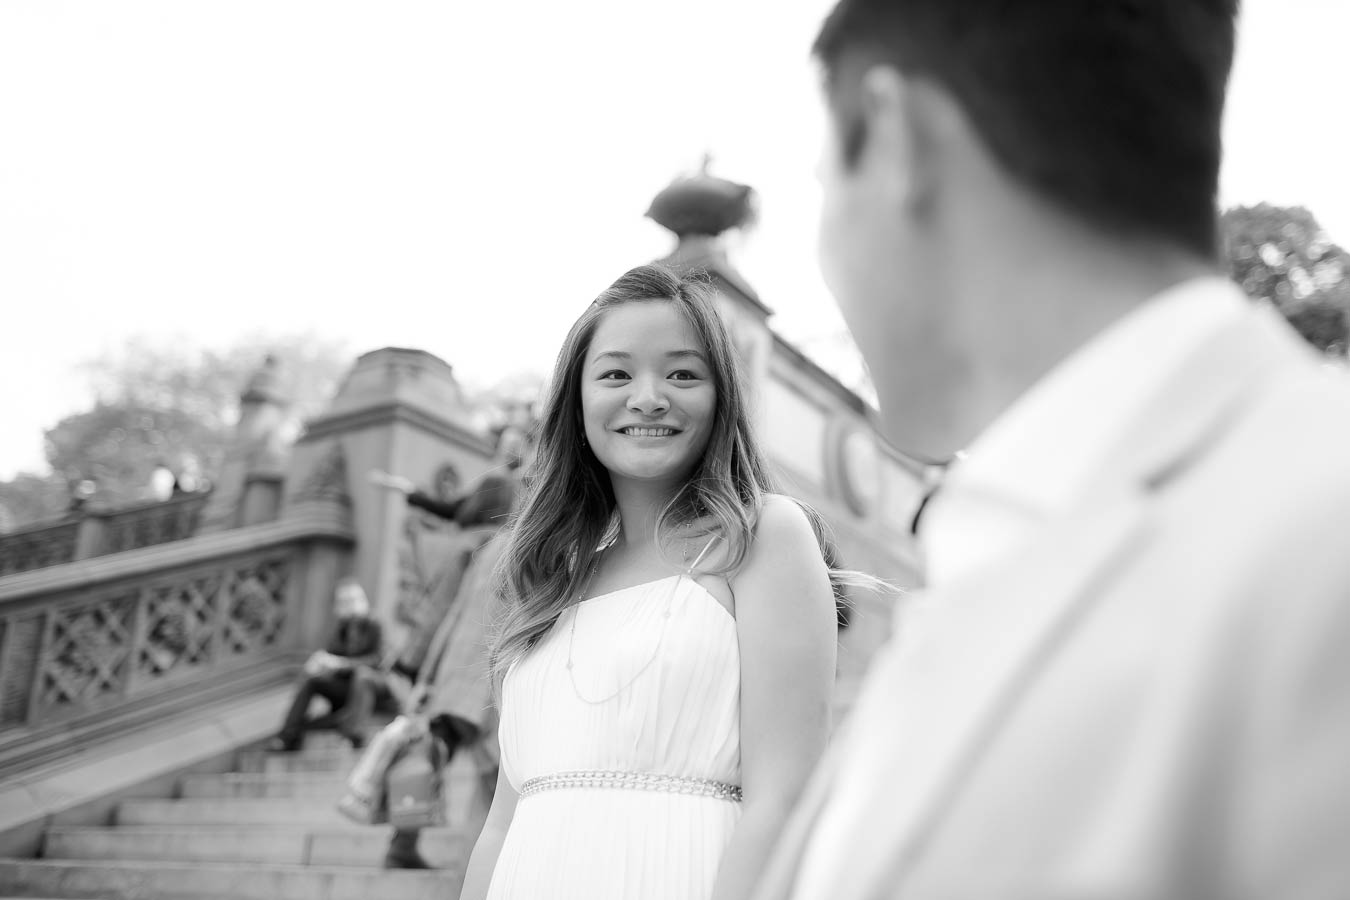 central-park-nyc-engagement-photographer-best0001.jpg